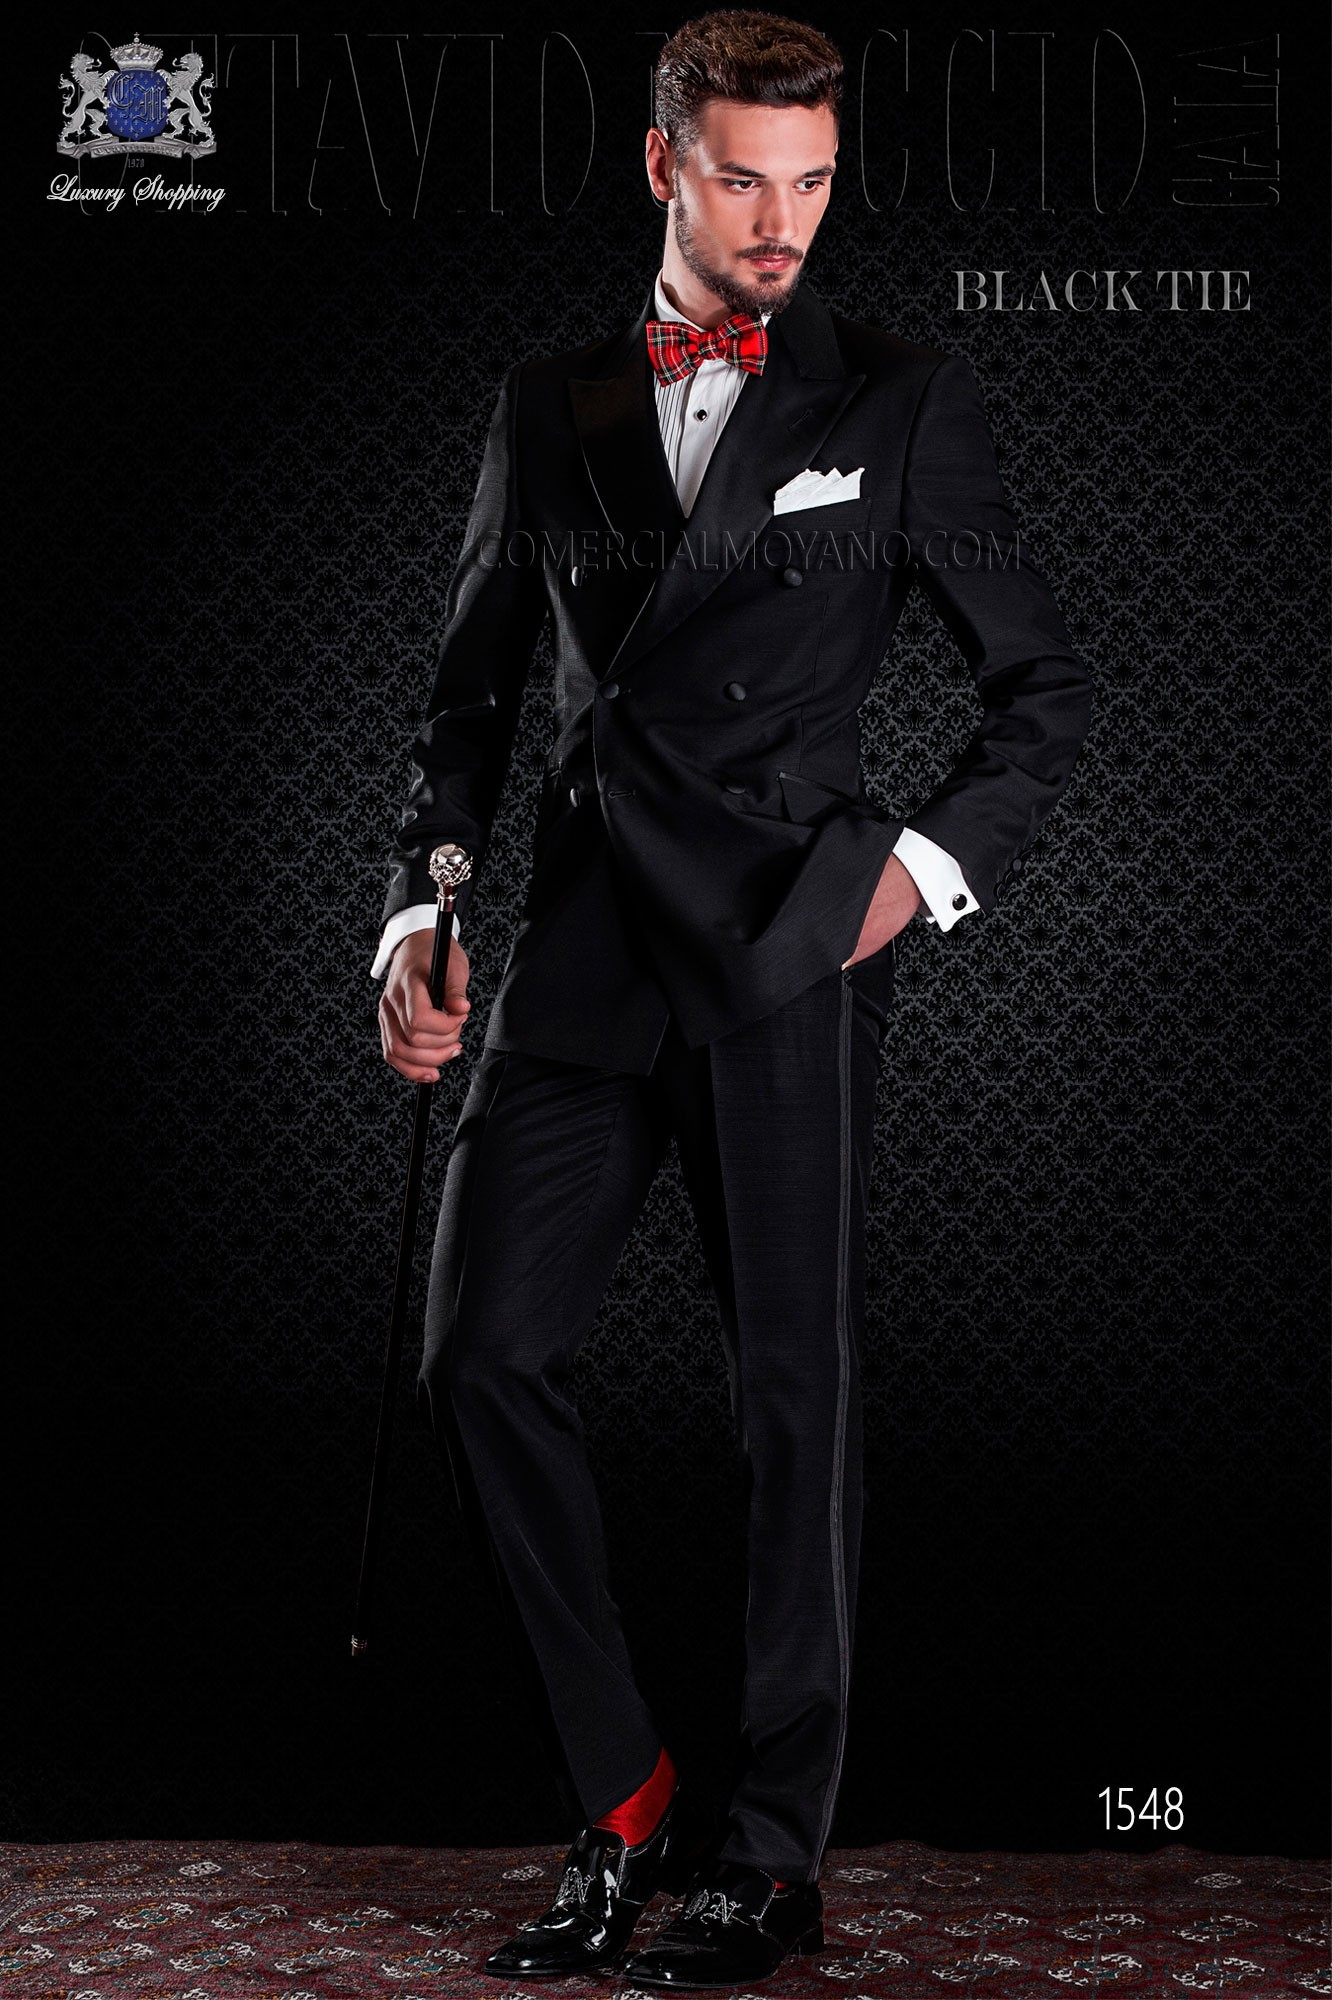 Italian double breasted black tuxedo with satin lapels. Peak lapels and 6 buttons. Wool mix fabric.